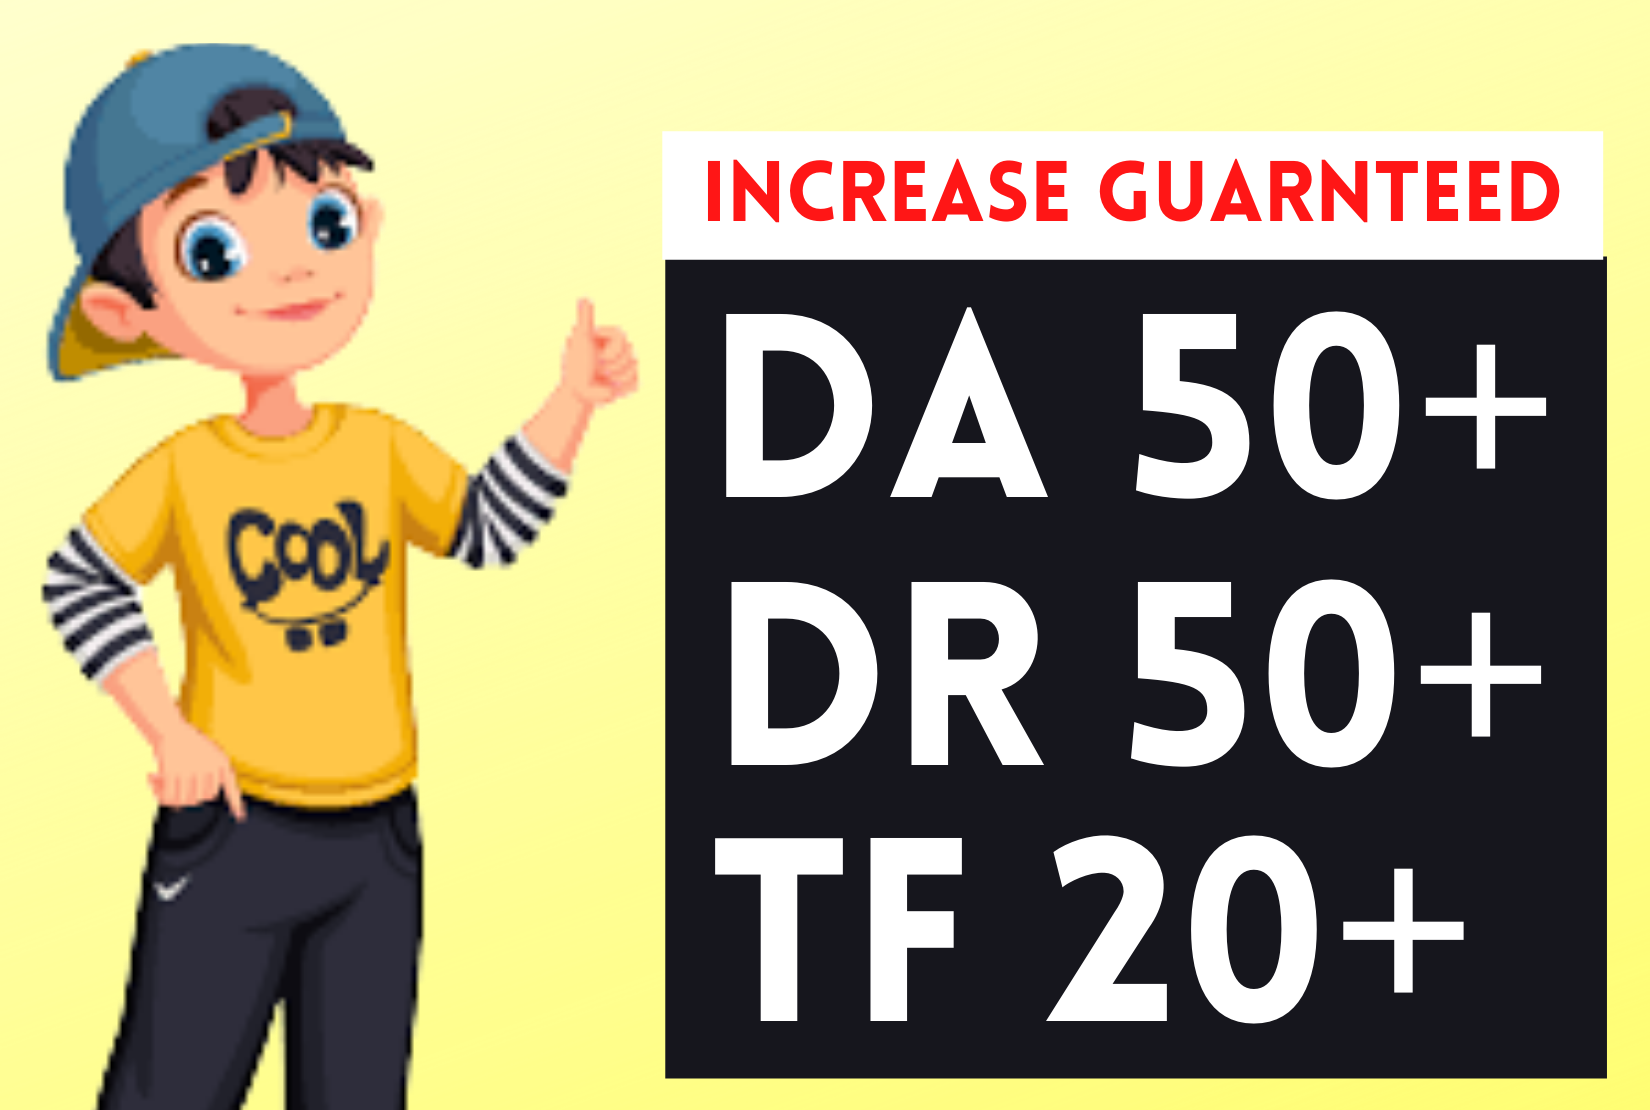 I will icrease domain rating ahrefs dr 50 moz da 50+